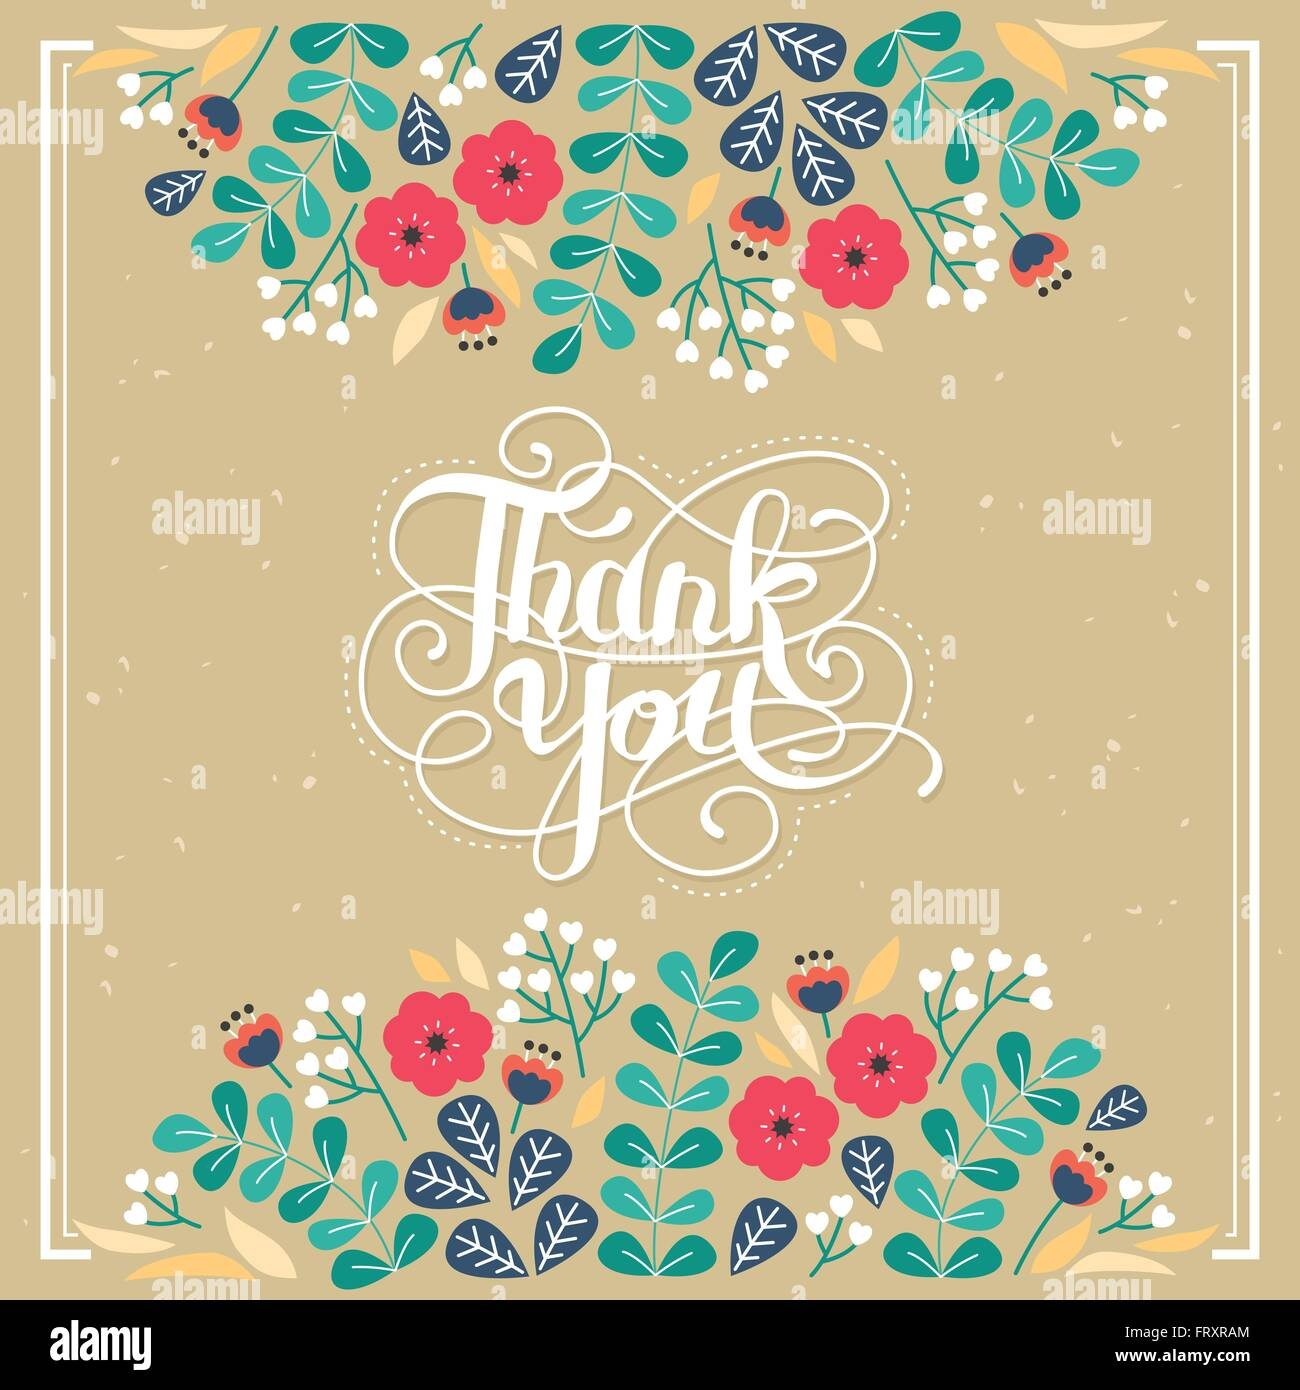 Poster design keywords - Stock Vector Elegant Thank You Decorative Calligraphy Poster Design With Floral Elements